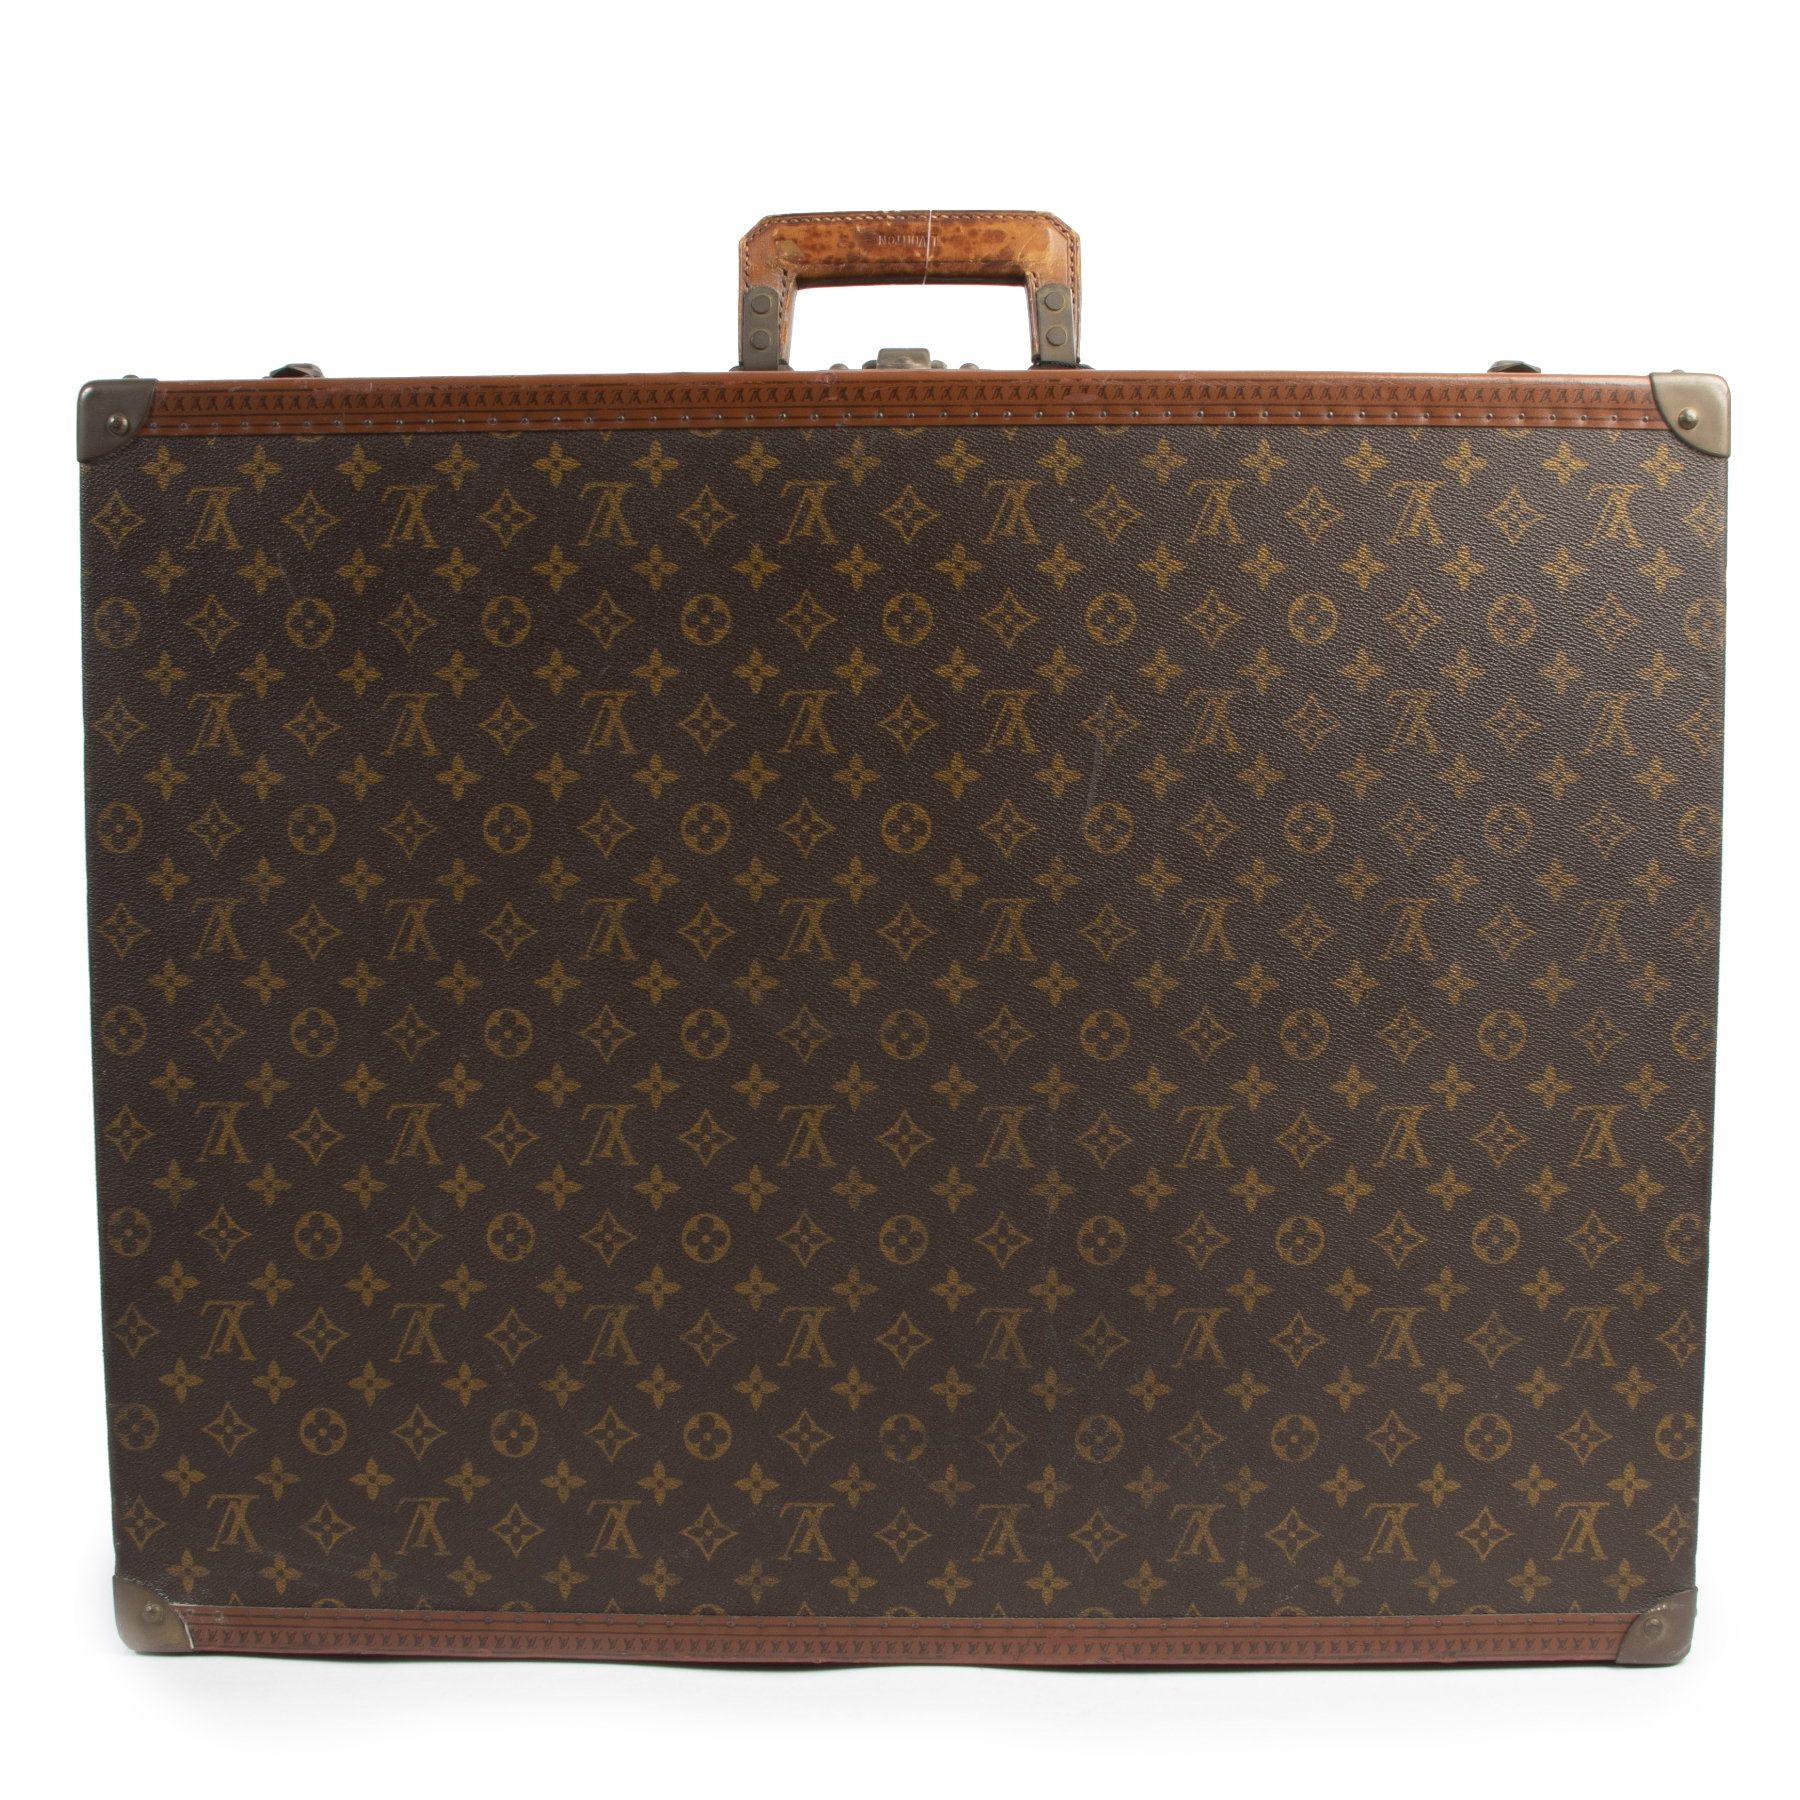 Authentieke tweedehands vintage Louis Vuitton Bisten 65 Suitcase koop online webshop LabelLOV